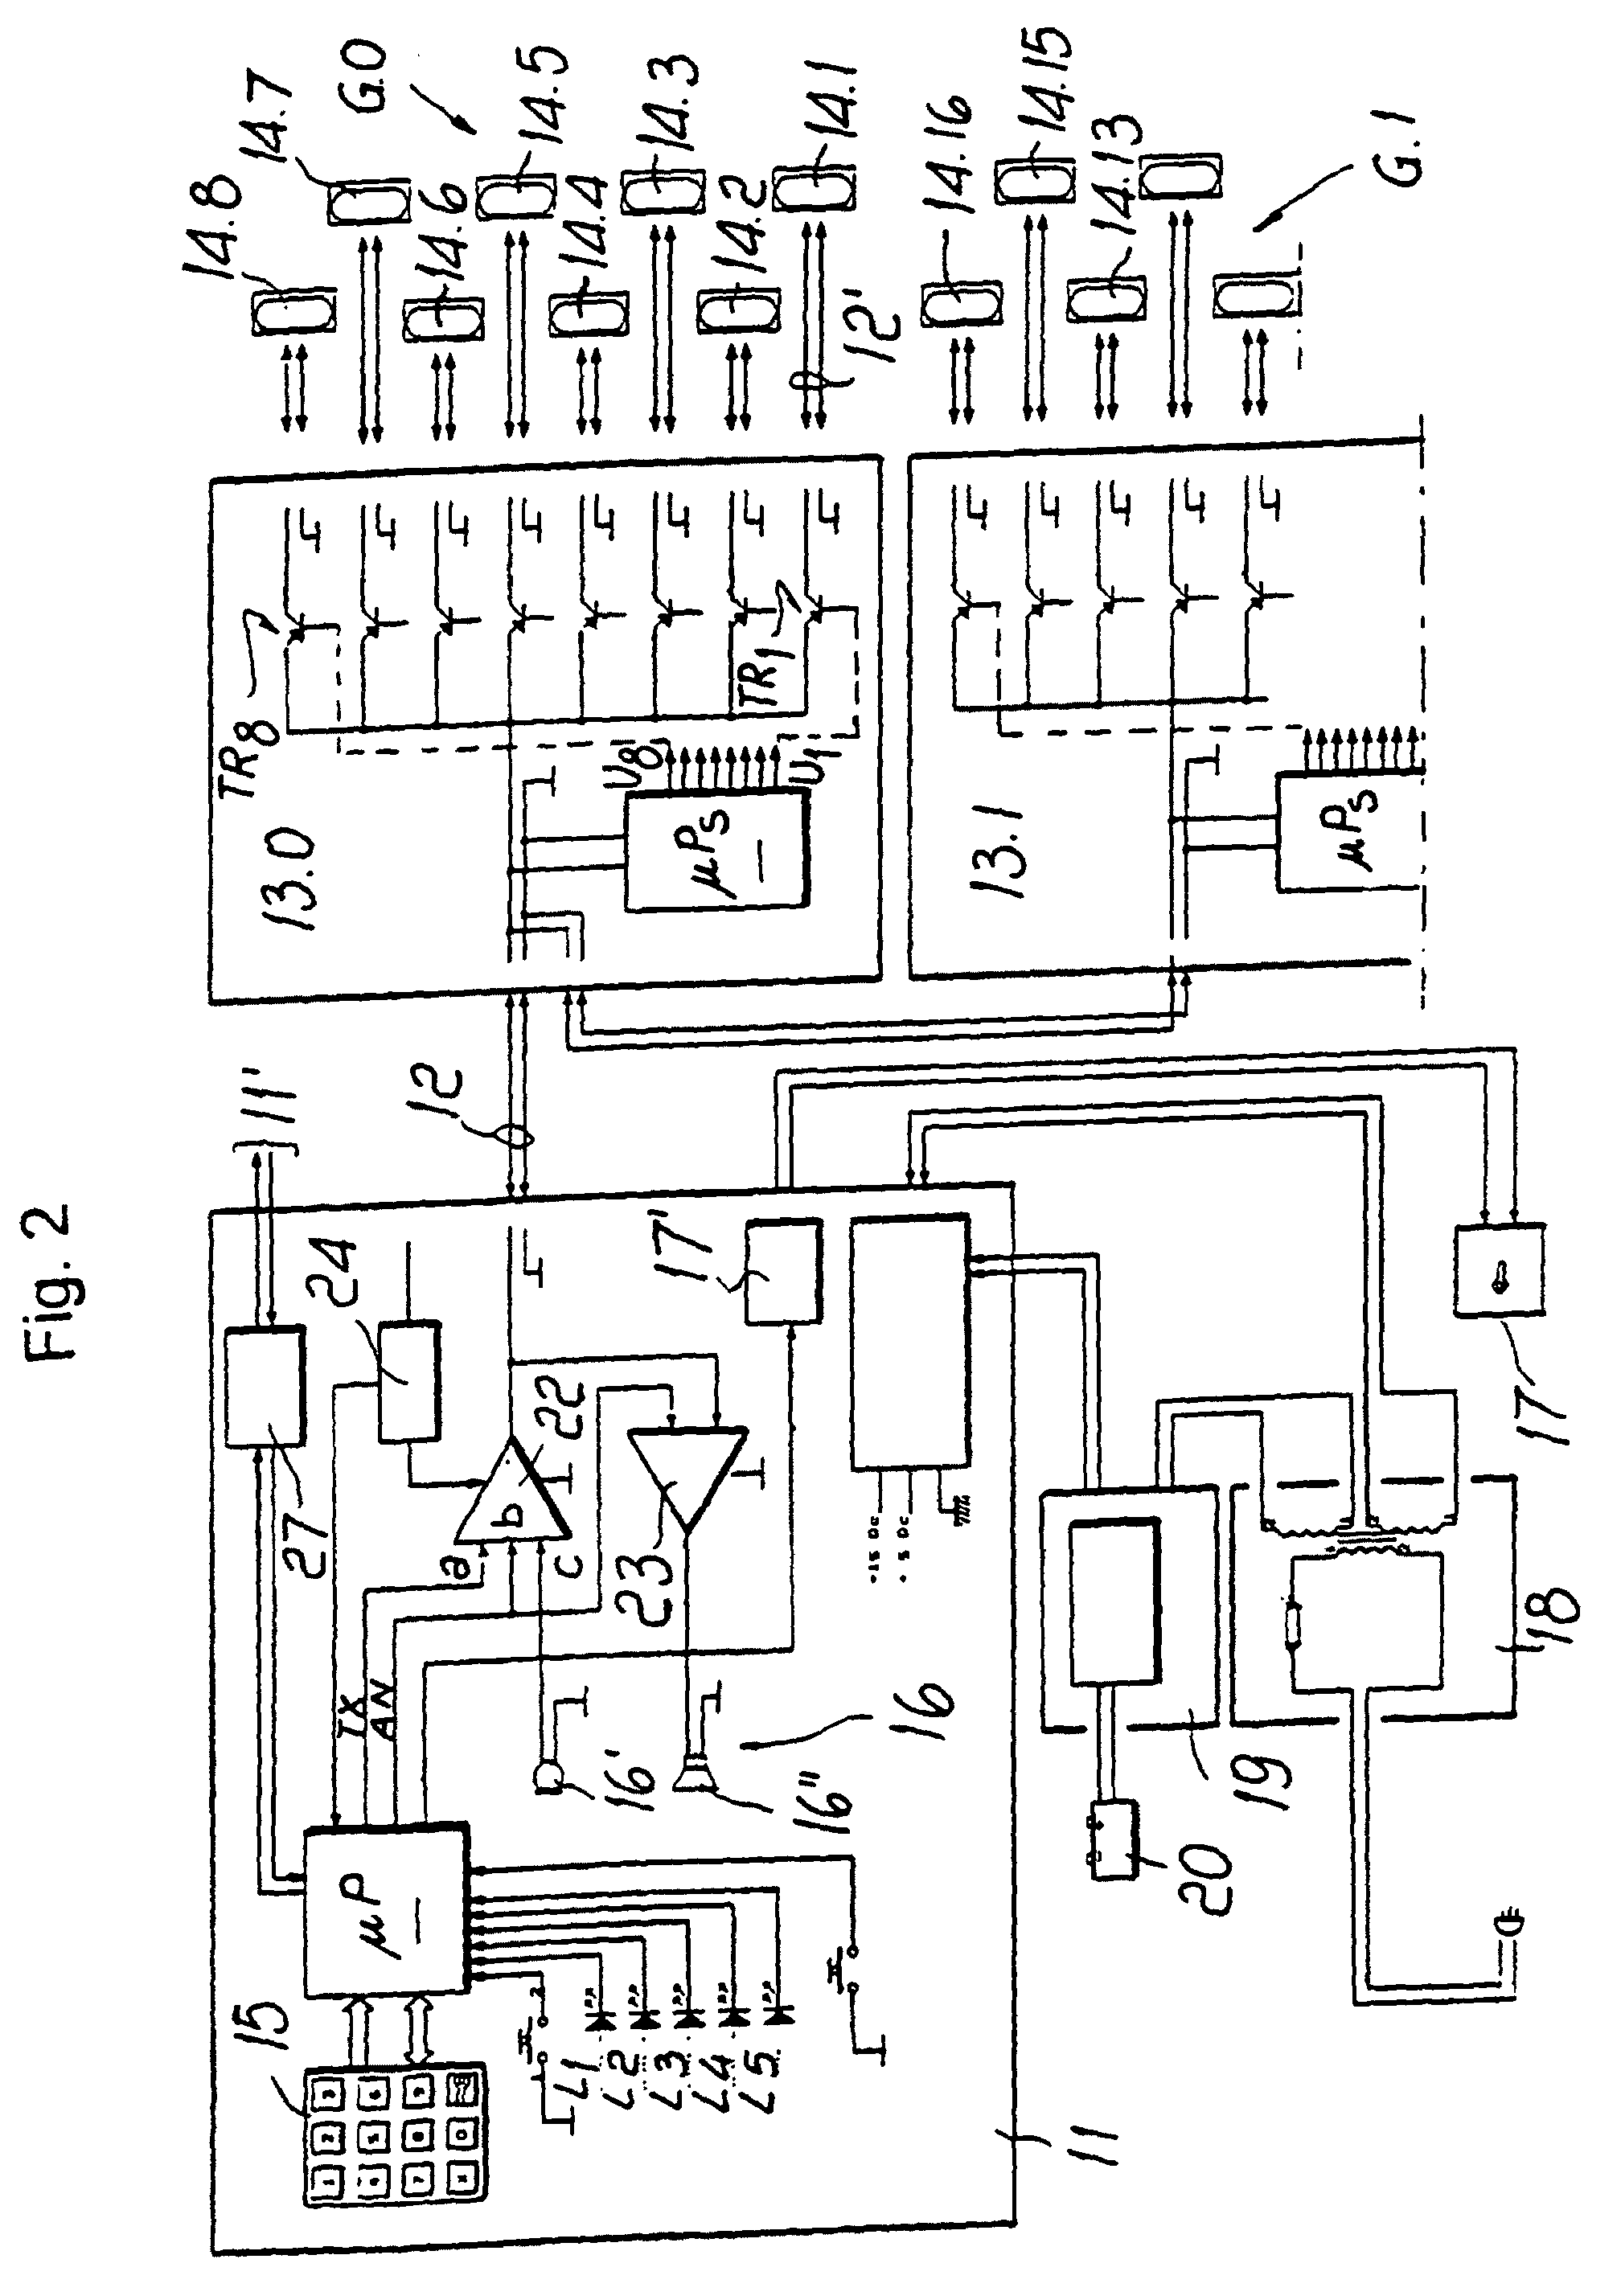 Patent ep0818914b1 two wire building intercommunication for Citofono urmet 1130 schema